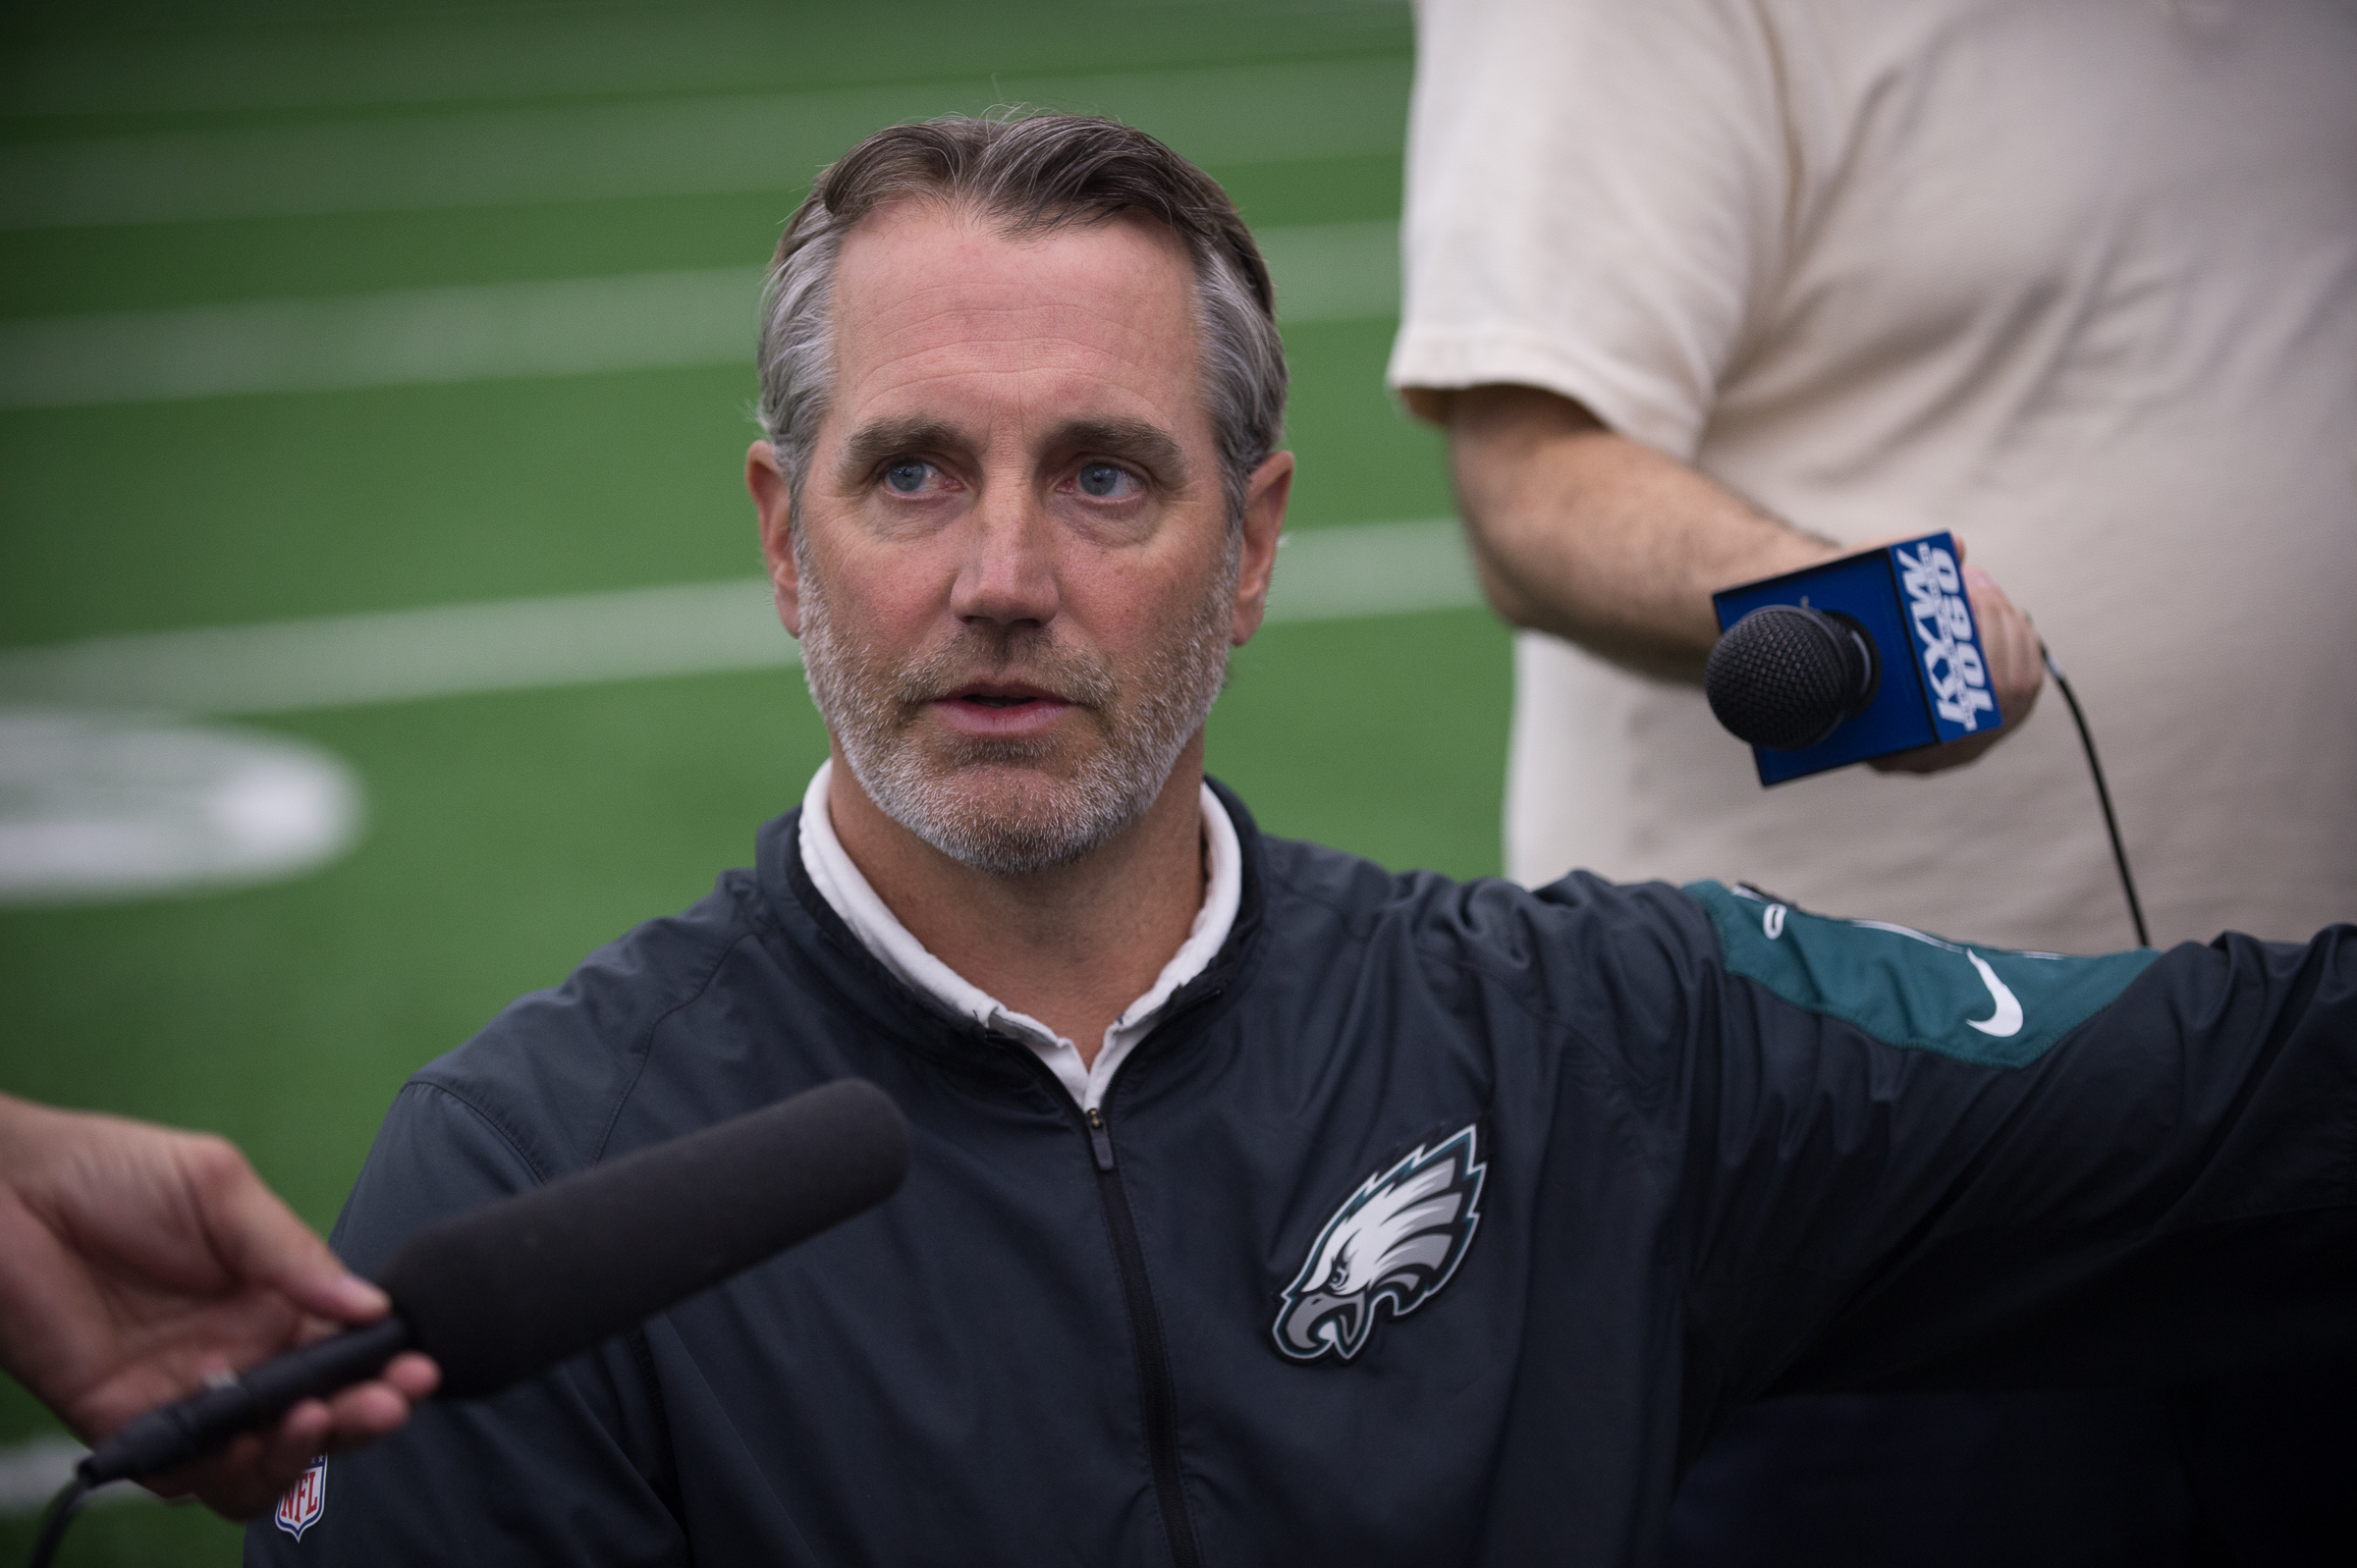 Cory Undlin, the Eagles´ defensive backs coach, says the diversification of the passing game is the greatest change he´s seen in the NFL over his 14 years in the league.